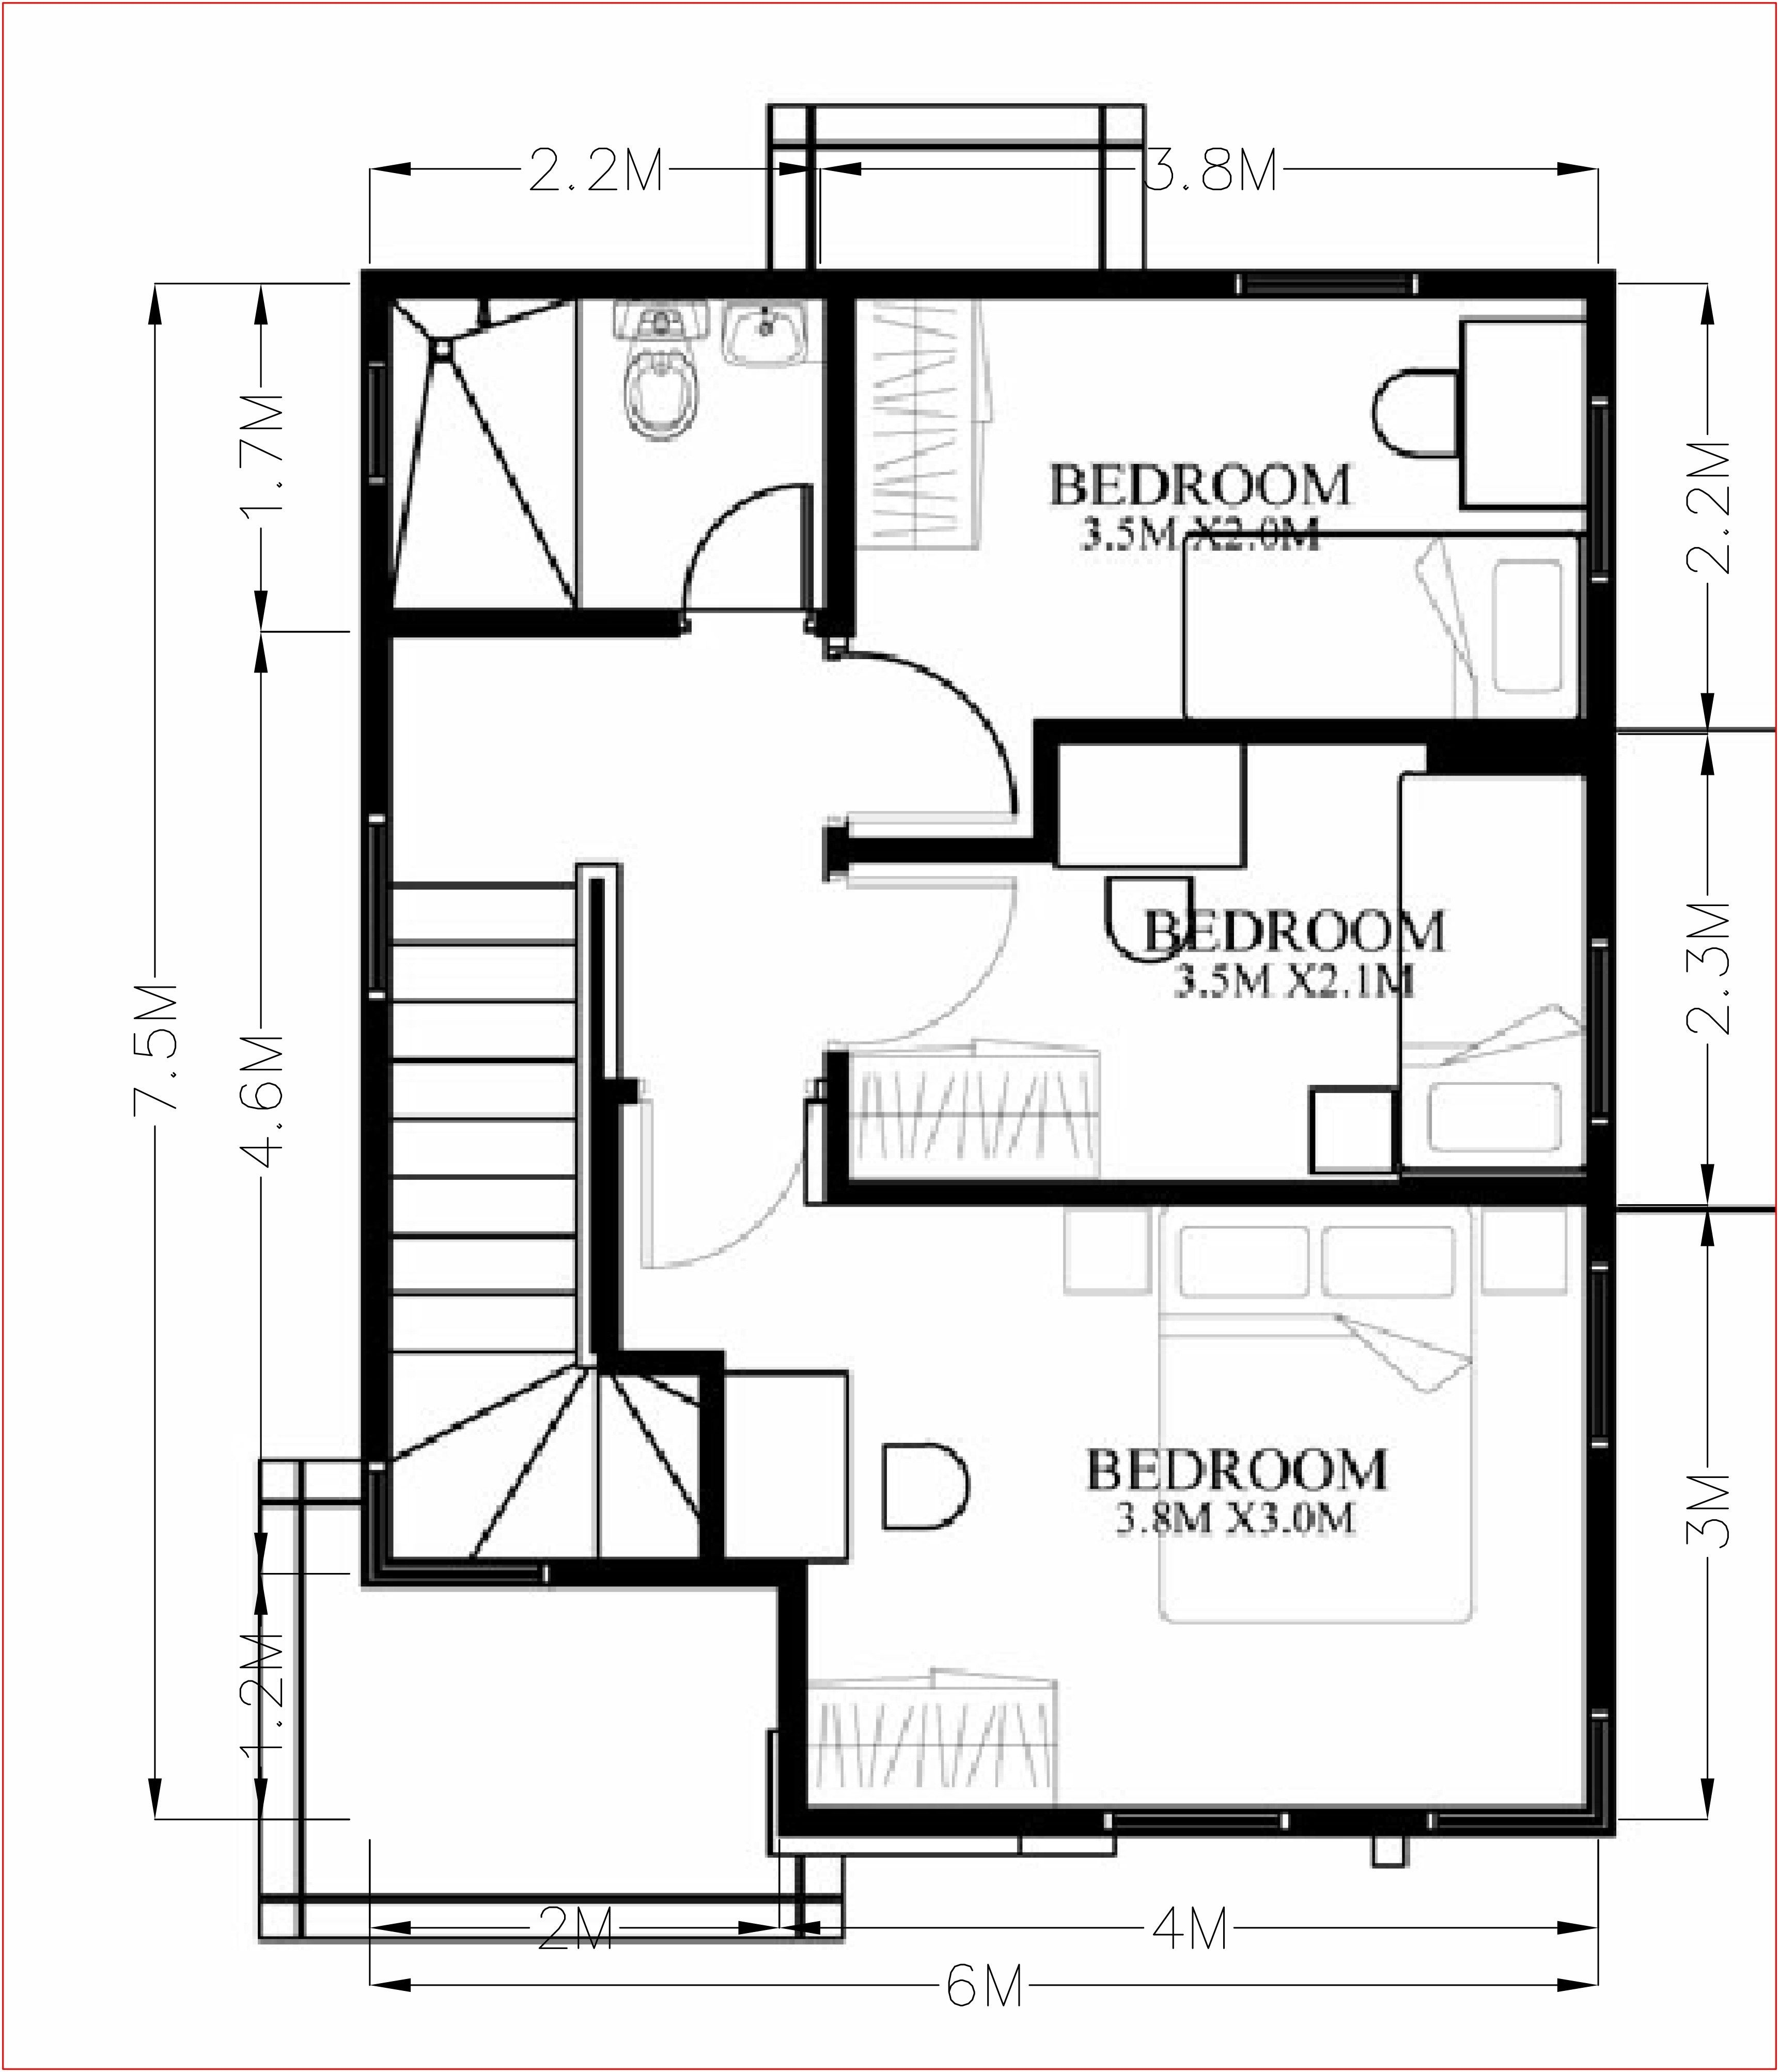 Small Home Design Plan 6x7 5m With 4 Bedrooms Home Ideas Small House Design Home Design Plan Home Design Floor Plans